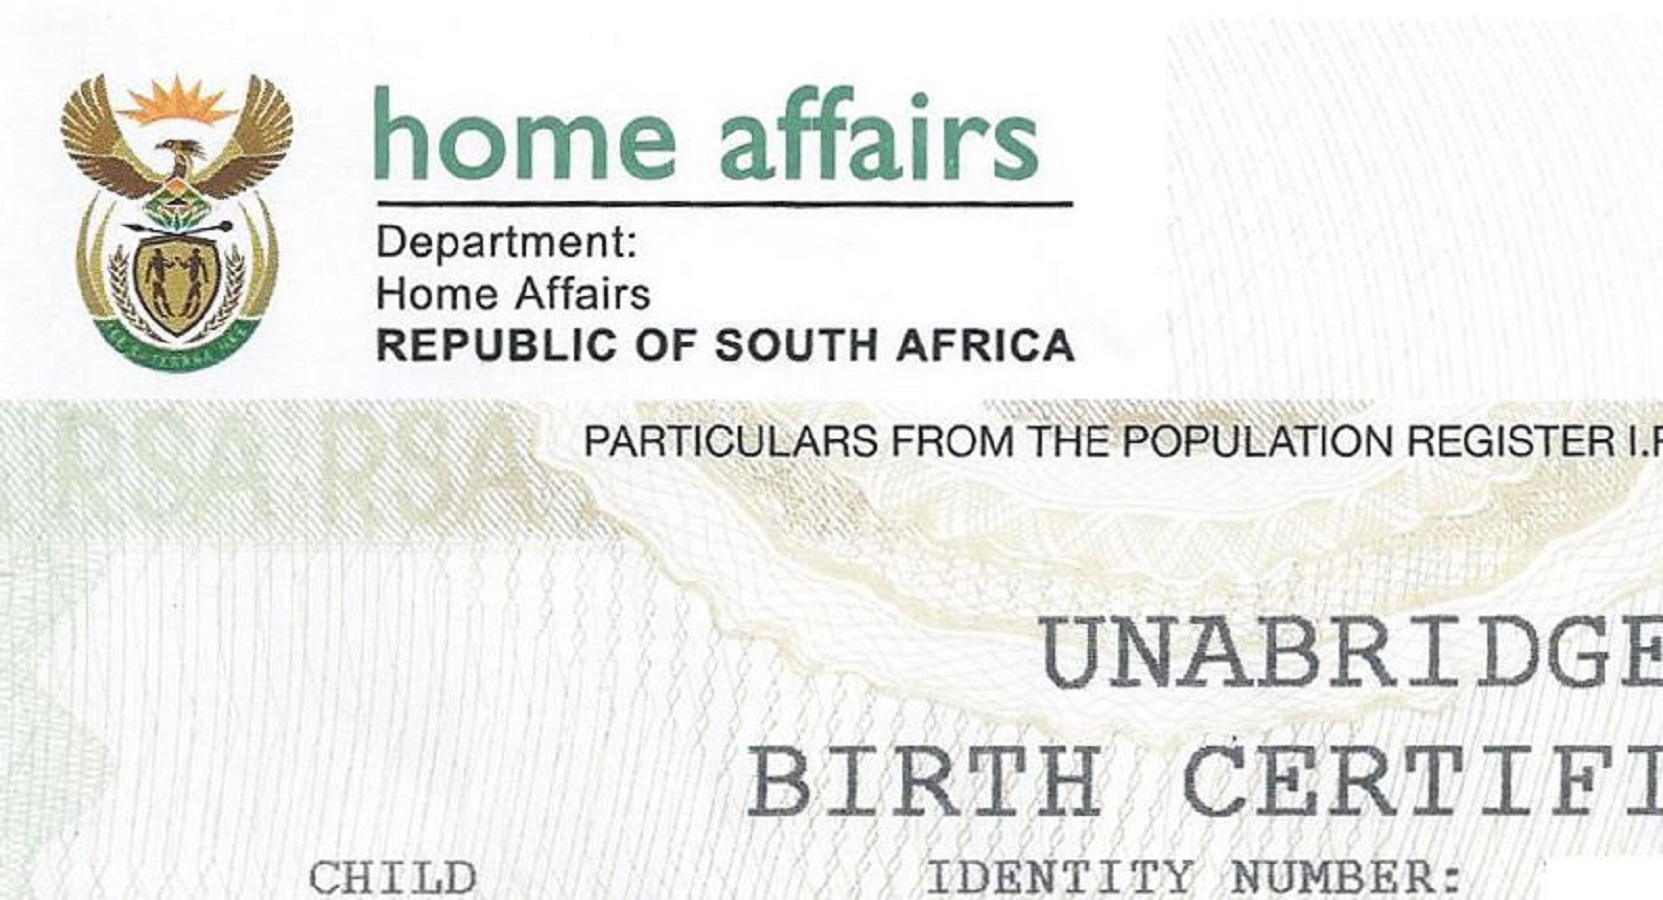 How To Get A South African Unabridged Birth Certificate Quickly